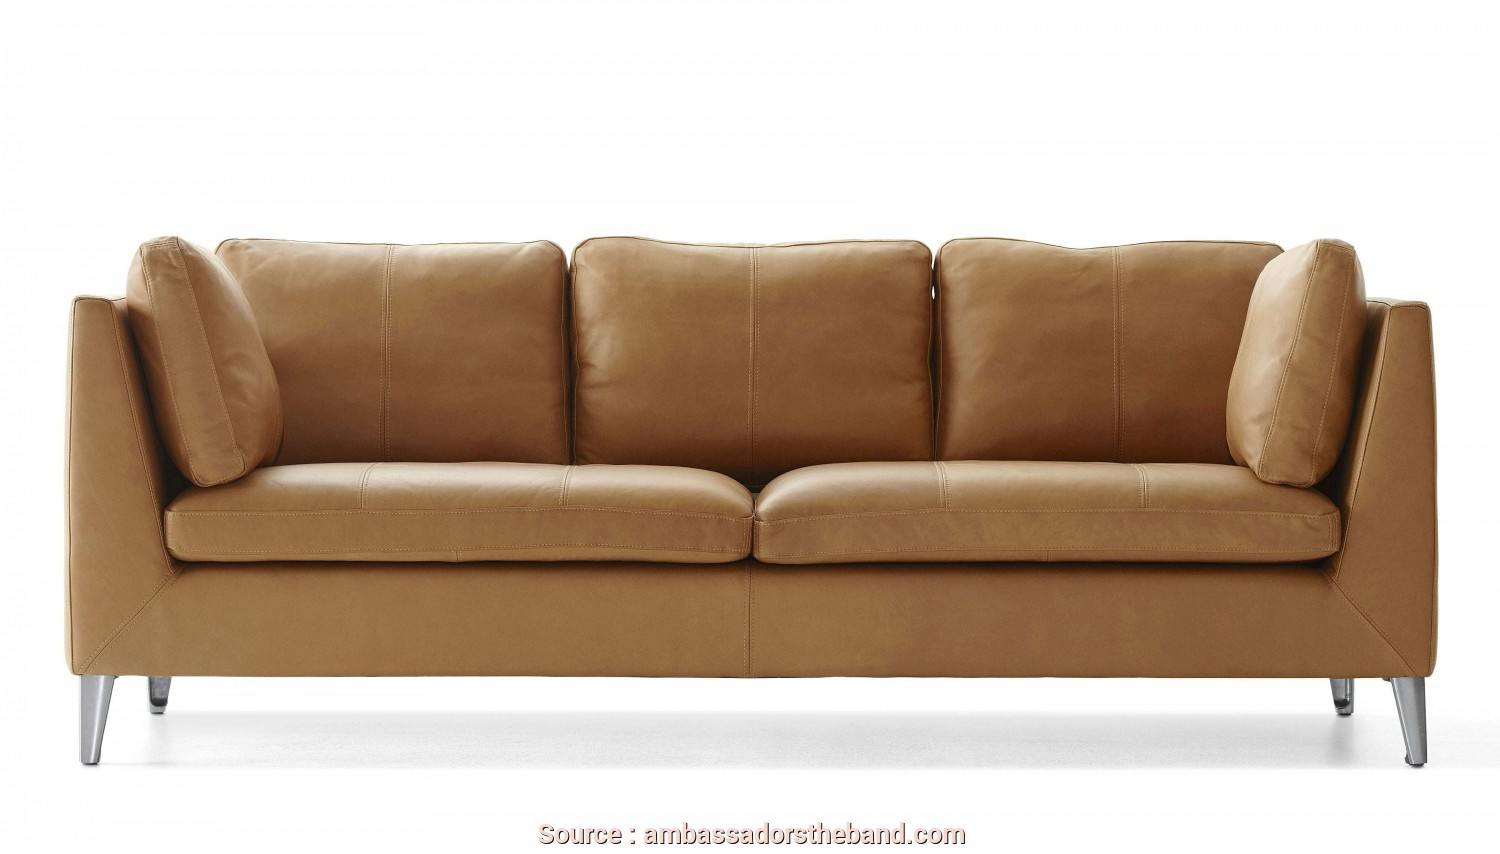 Vilasund Ikea España, Eccezionale Sofas Ikea Espana Amazon Co Uk Chairs Living Room Furniture Home